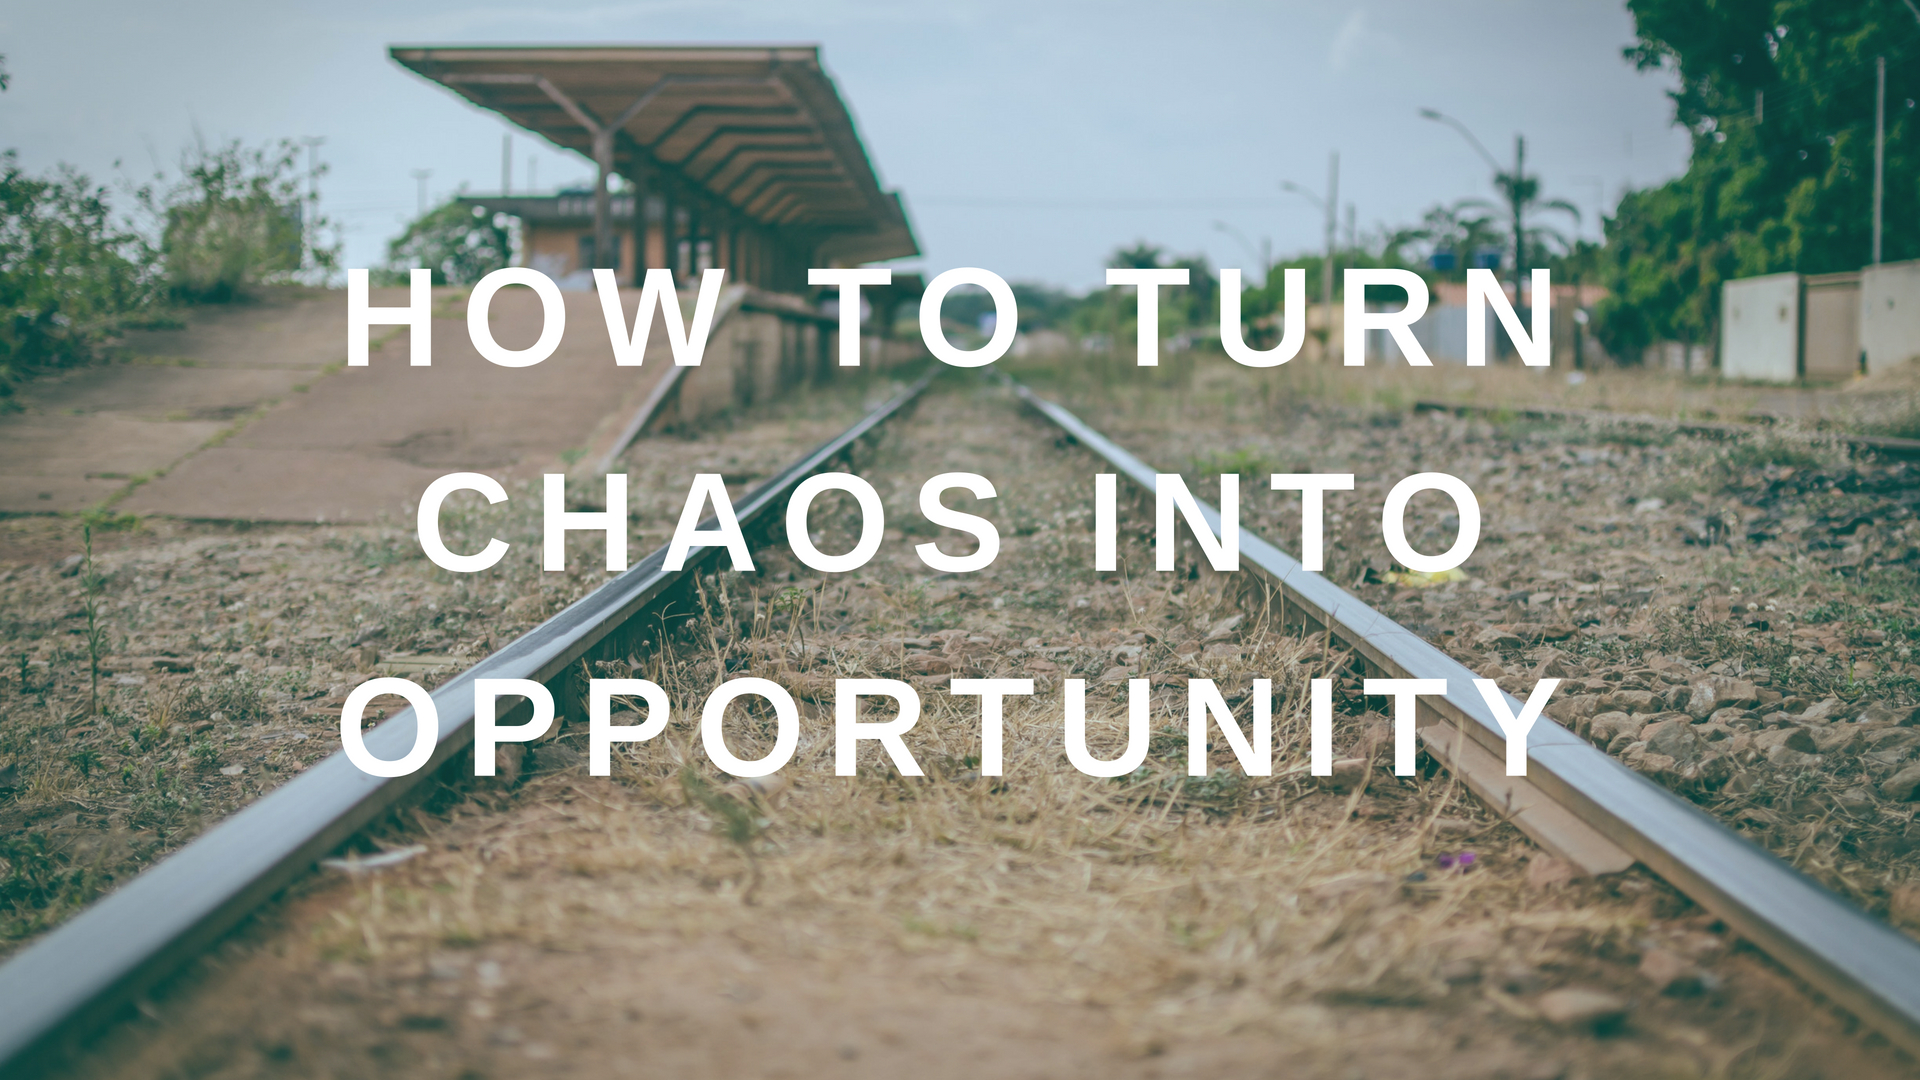 How to Turn Chaos into Opportunity